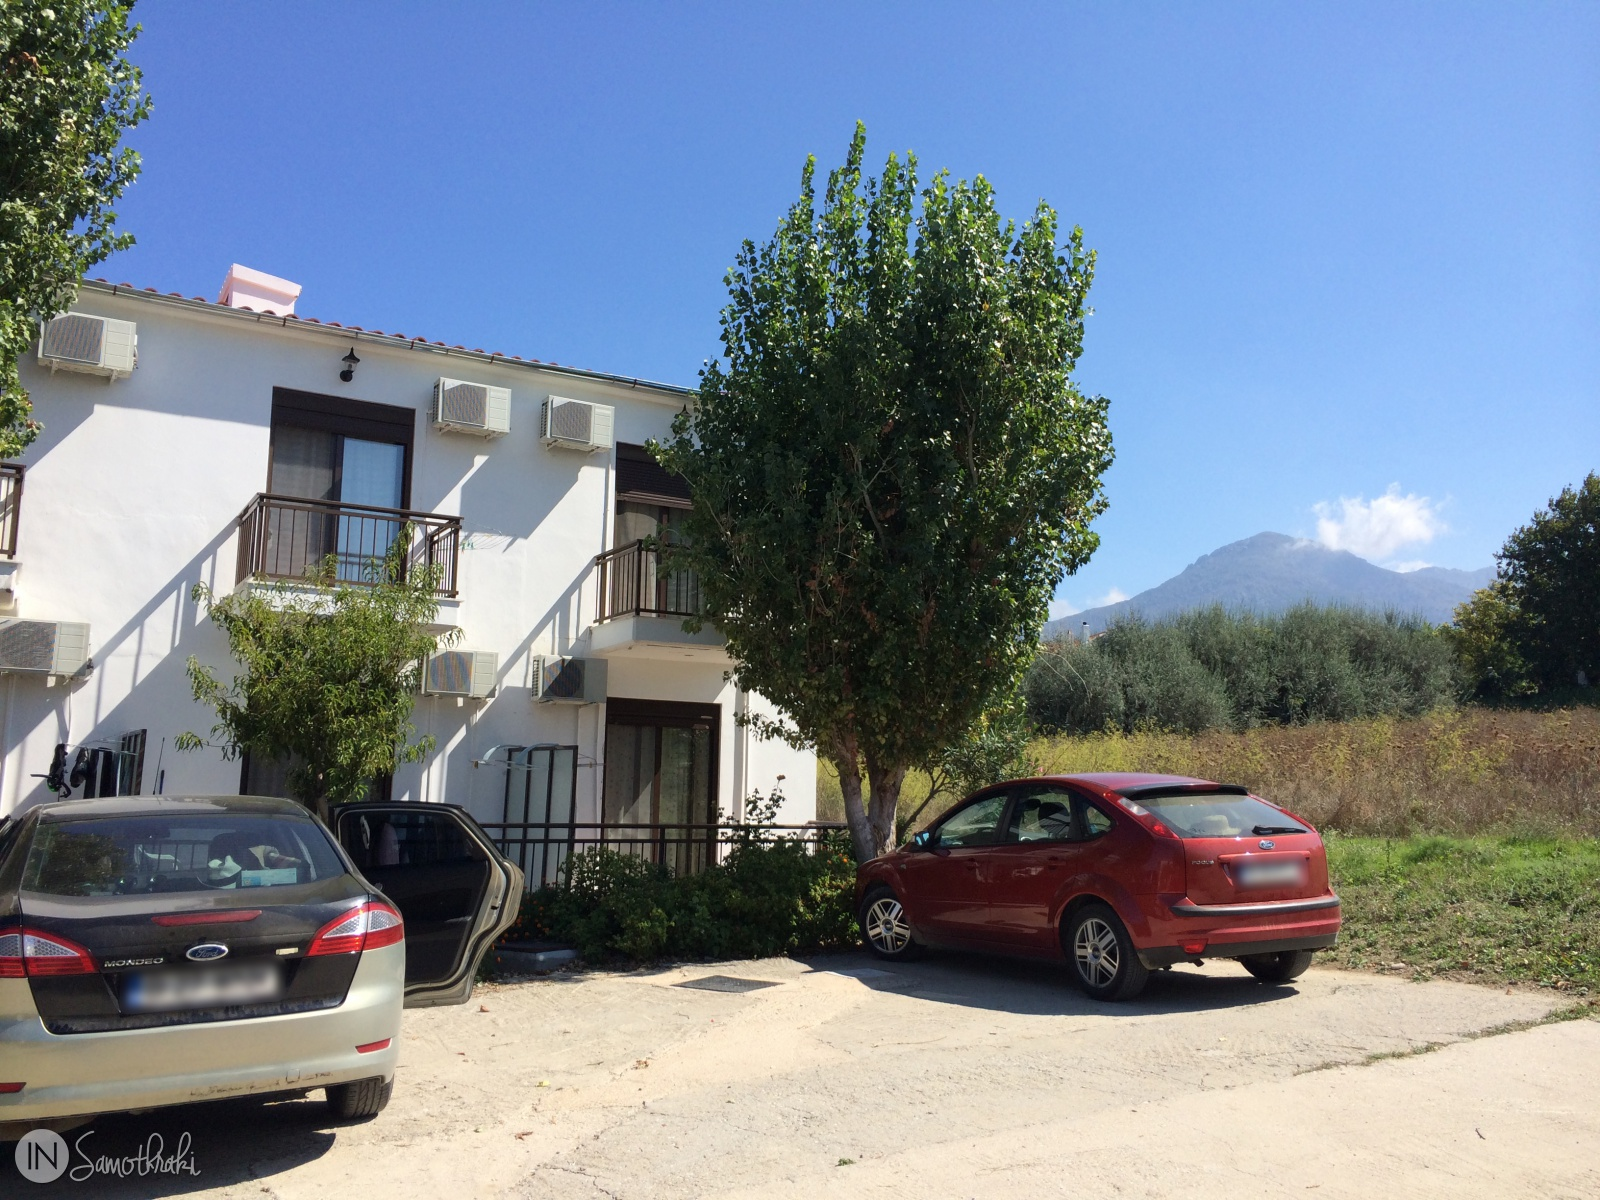 Hotels and apartments in Samothrace